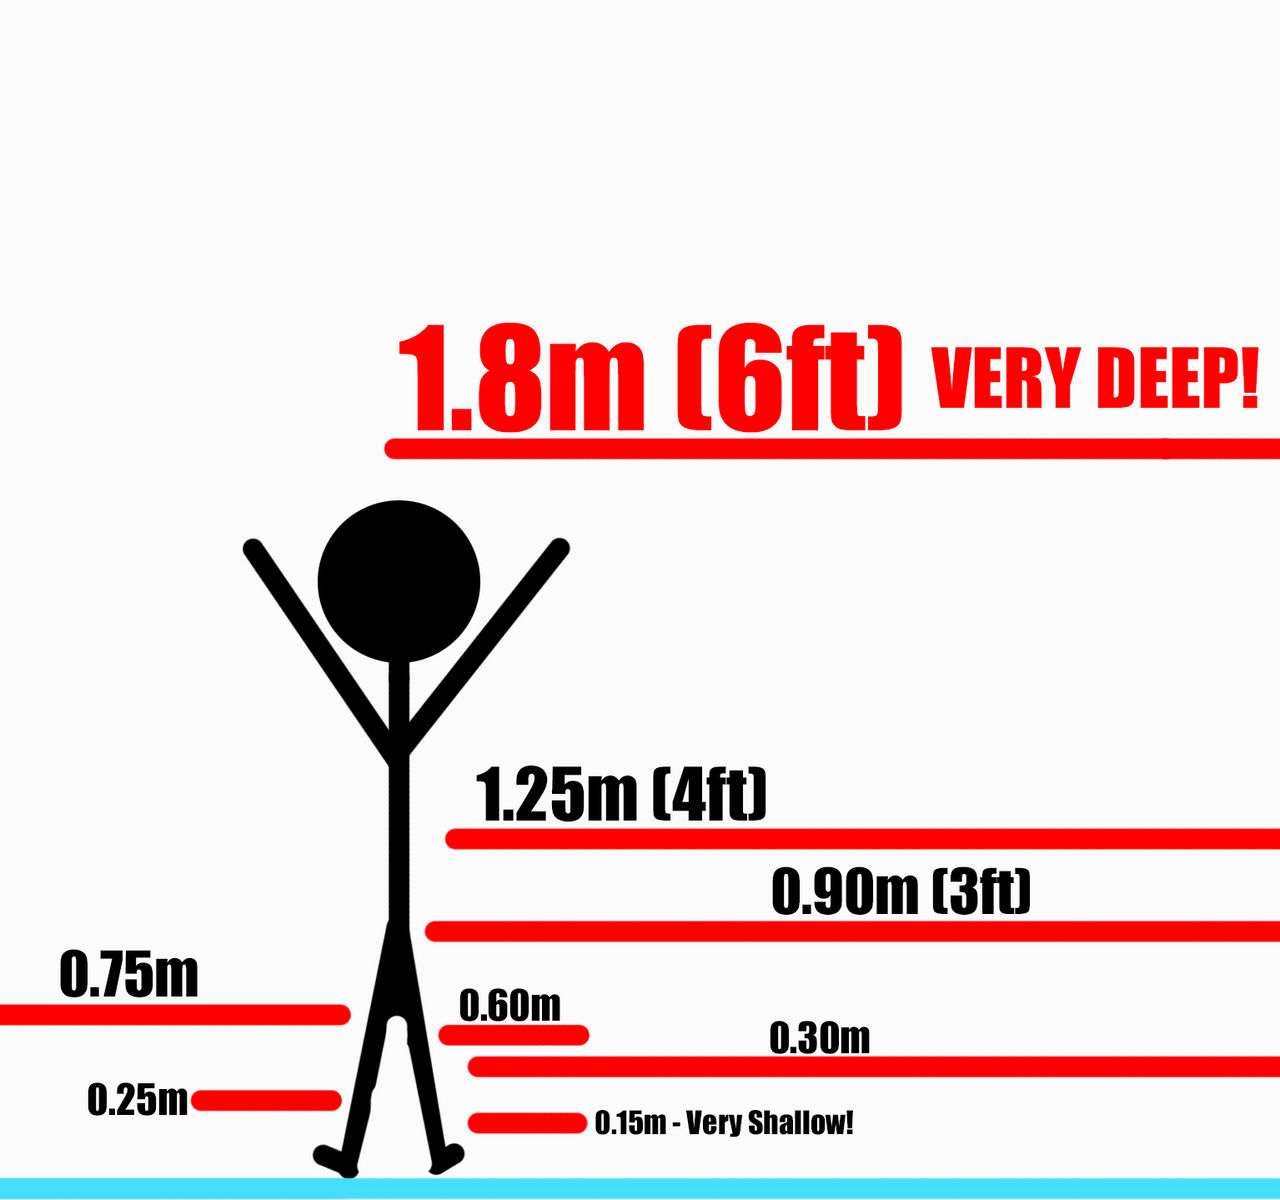 Water Depth Vs Average Man Height By